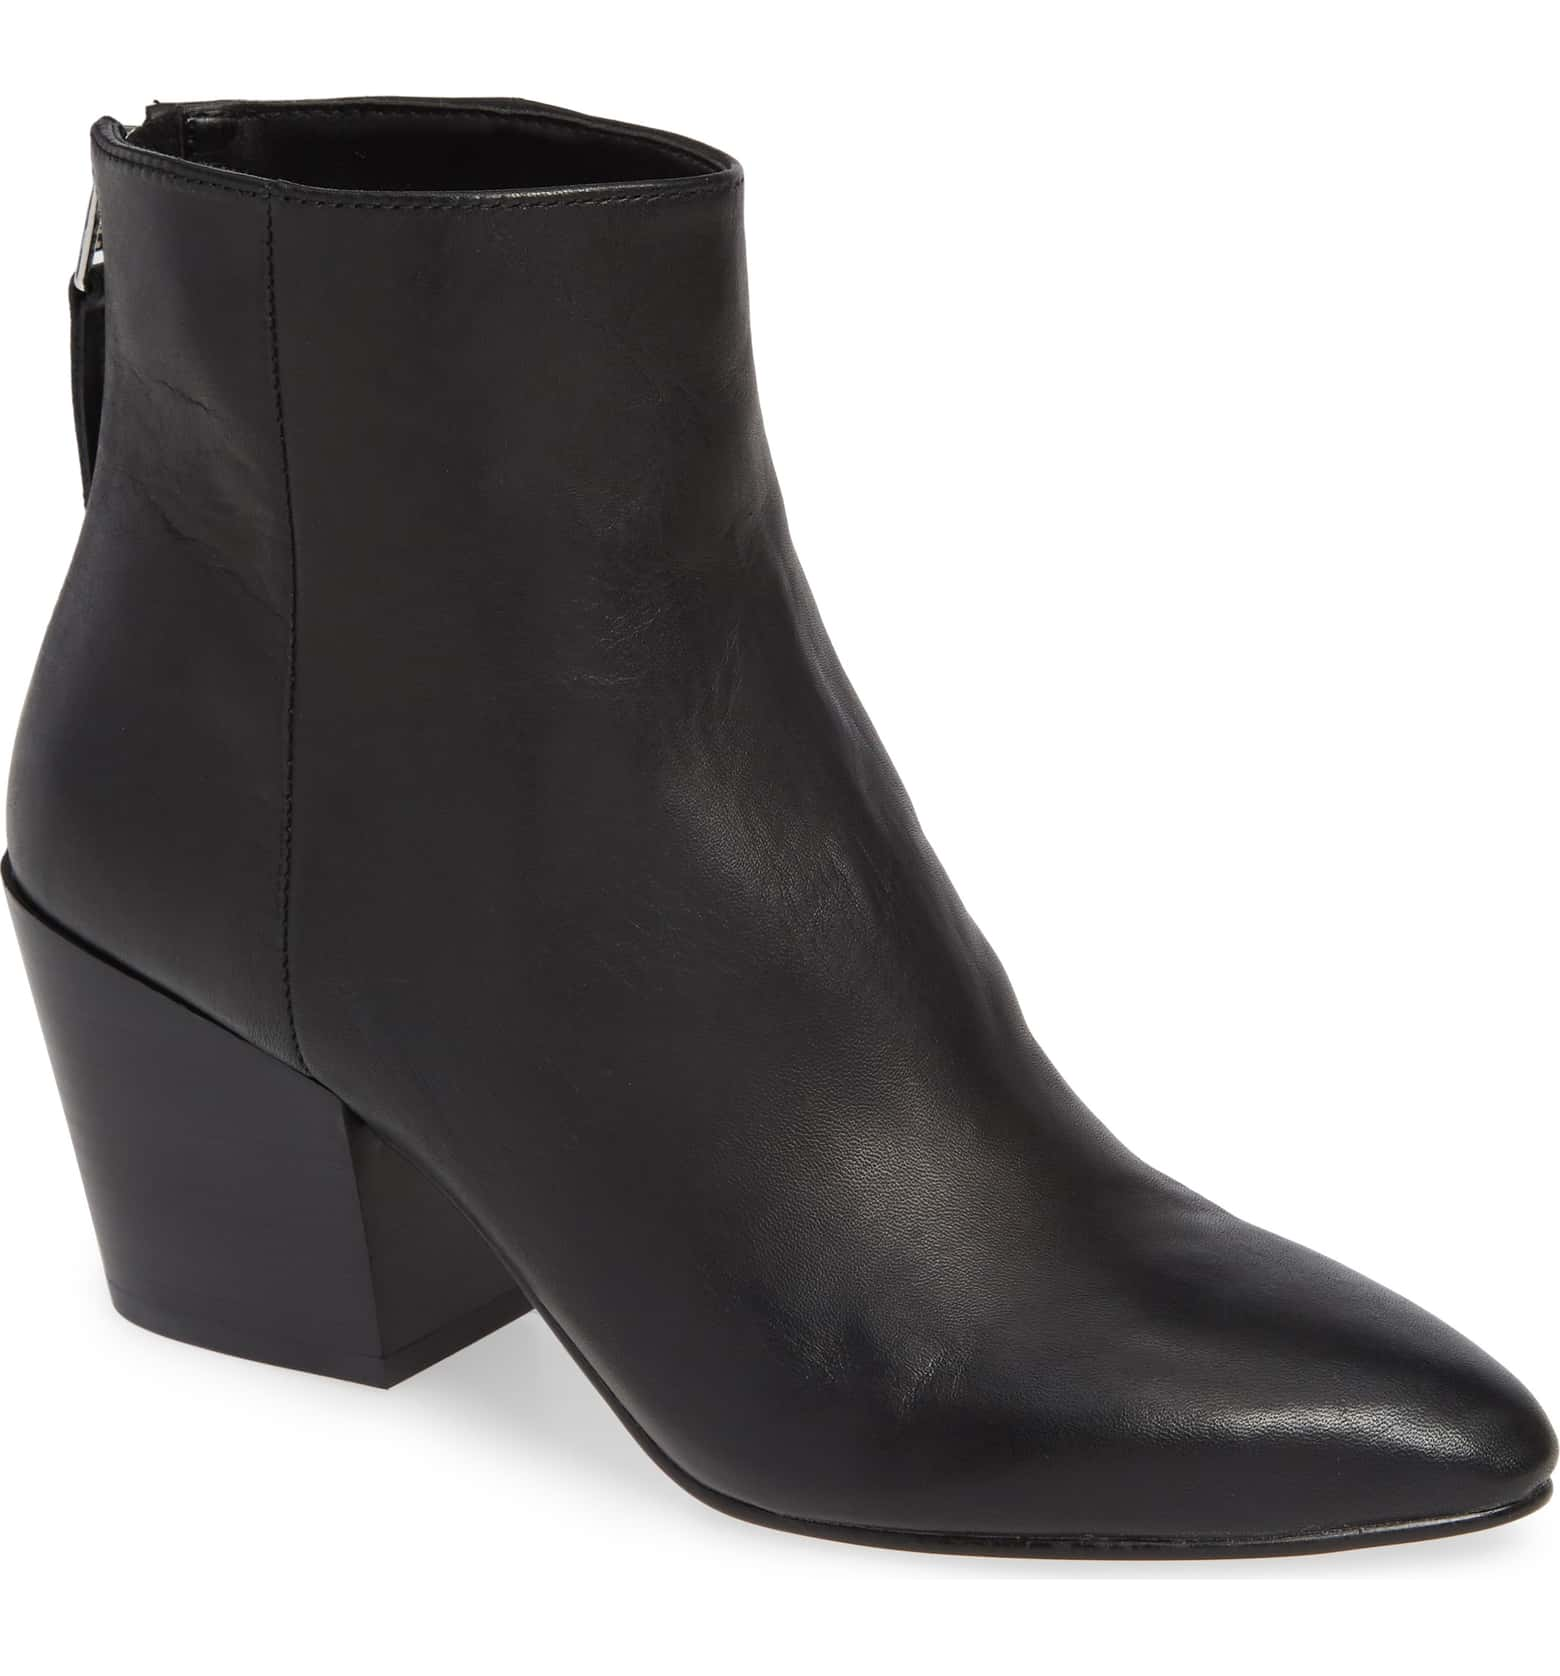 Coltyn bootie - credit Nordstrom.jpeg